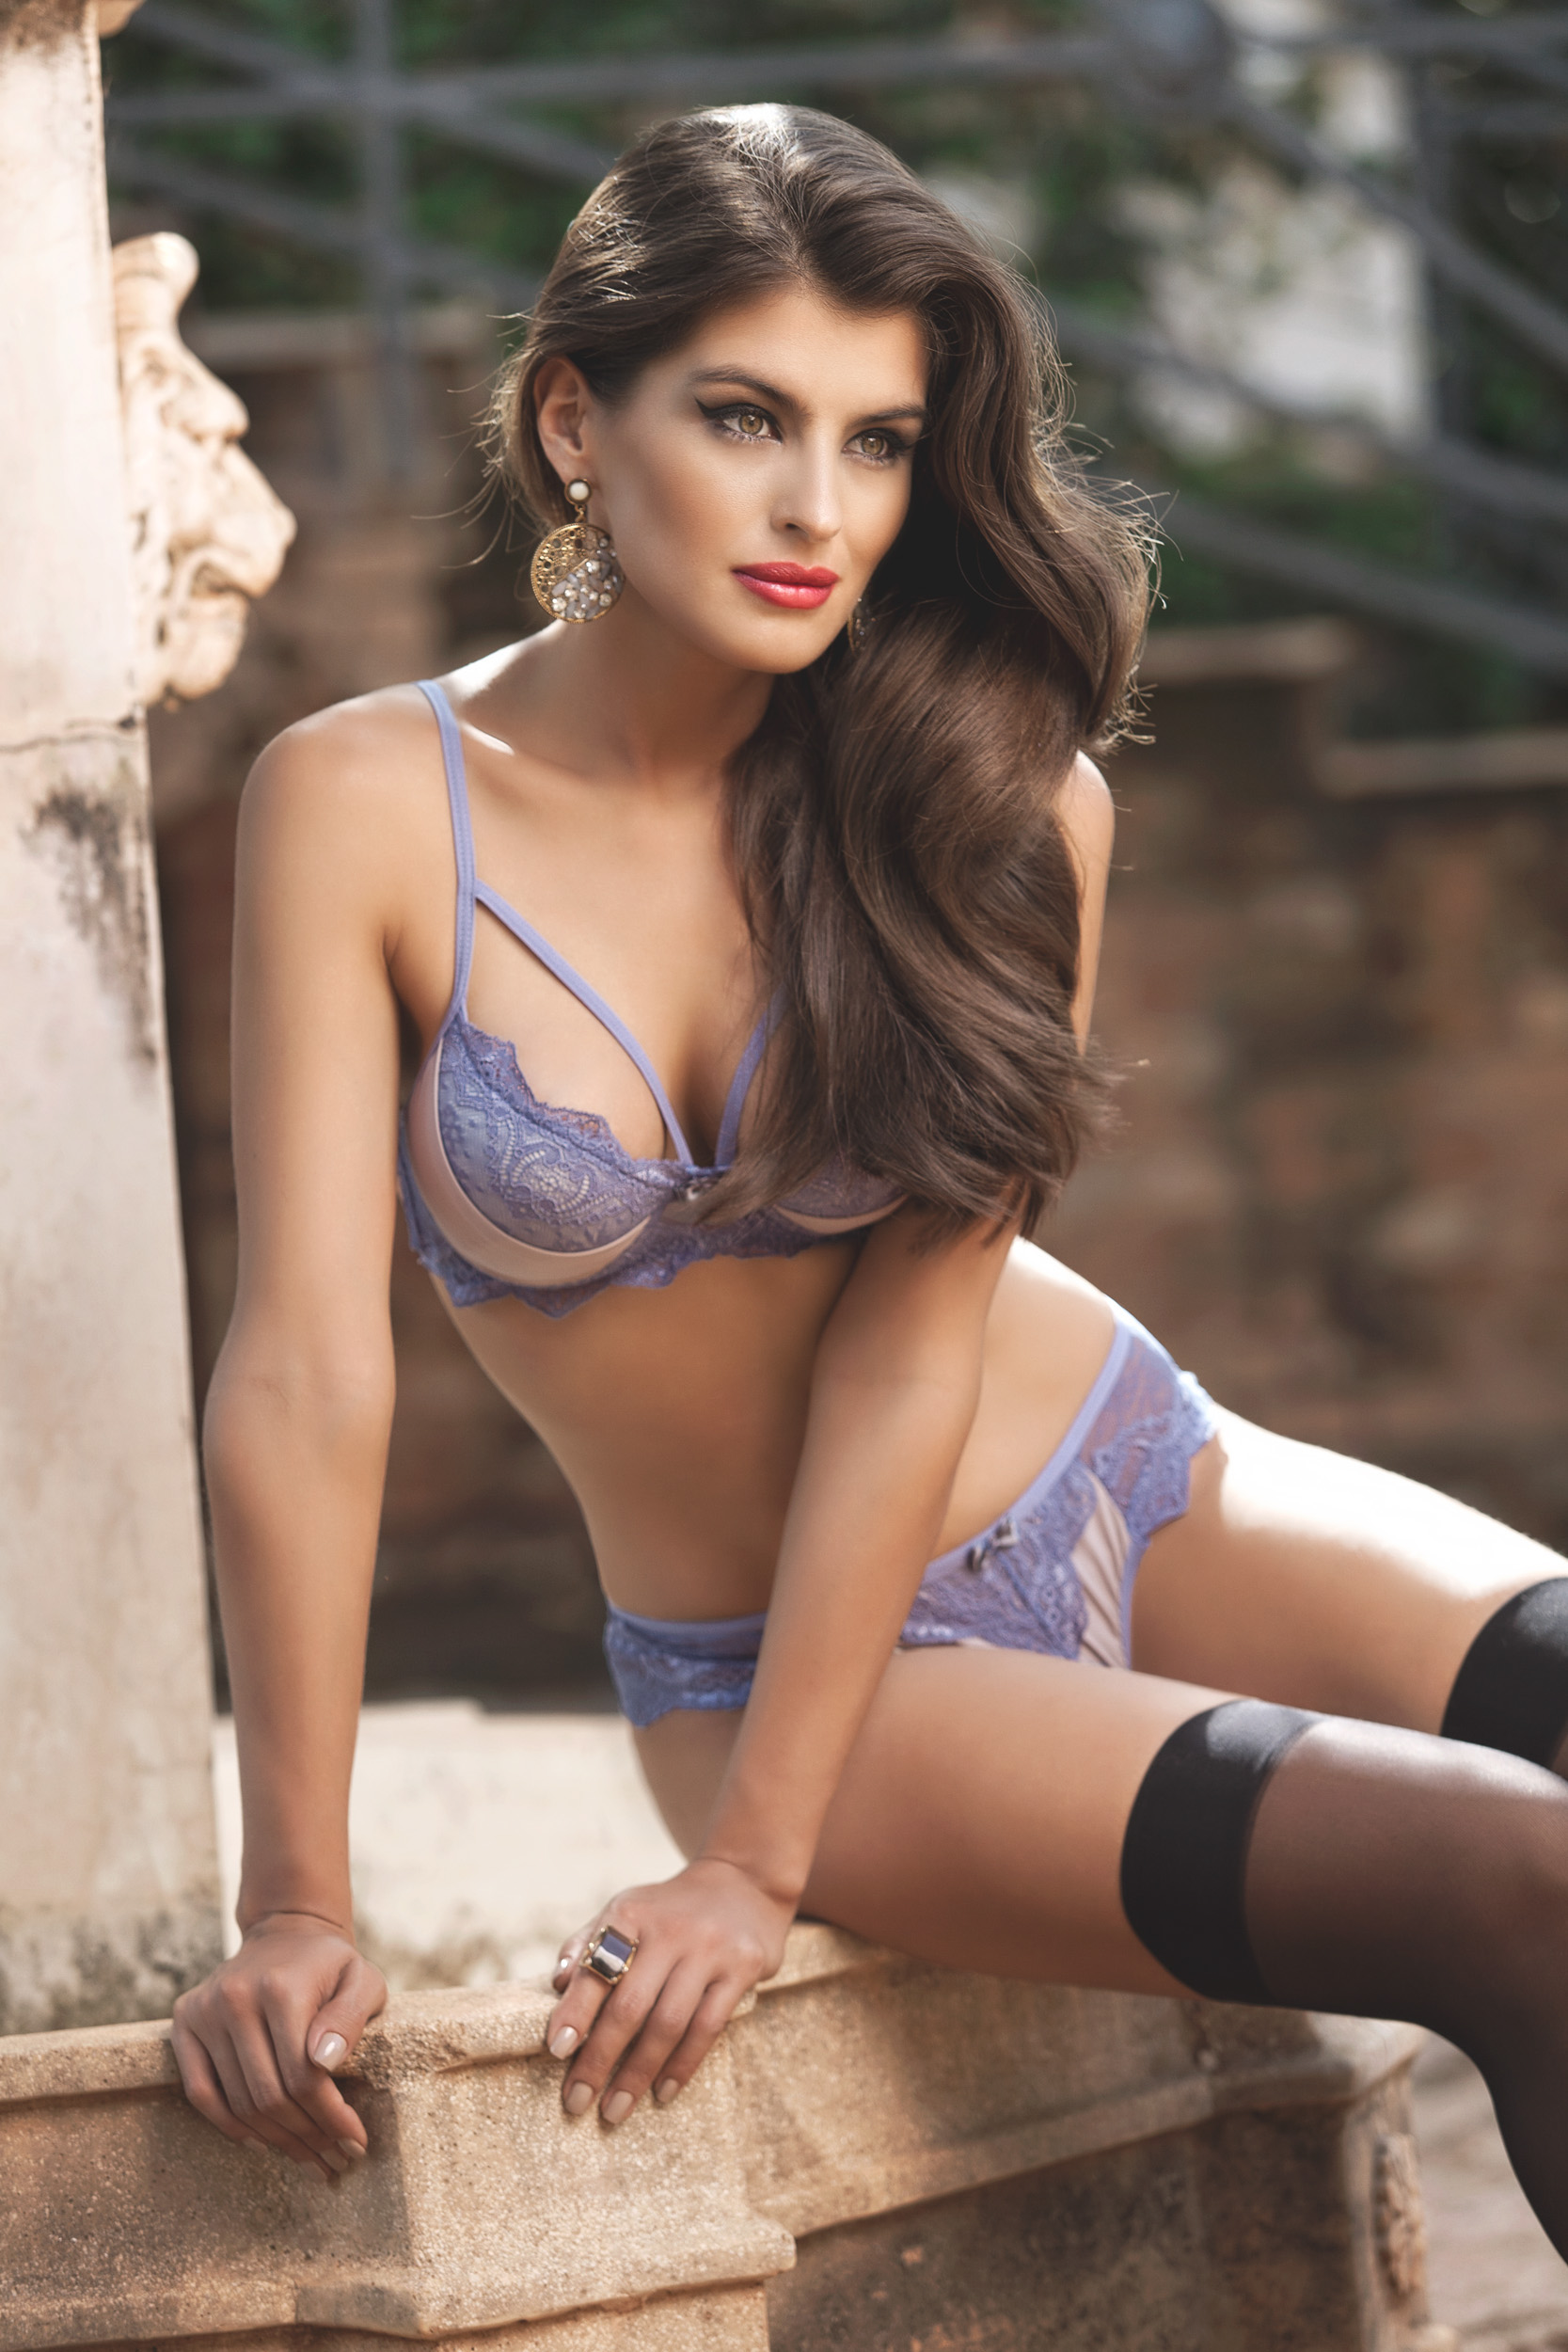 e86142459 Winter 2015 Intima Passion lingerie on Behance